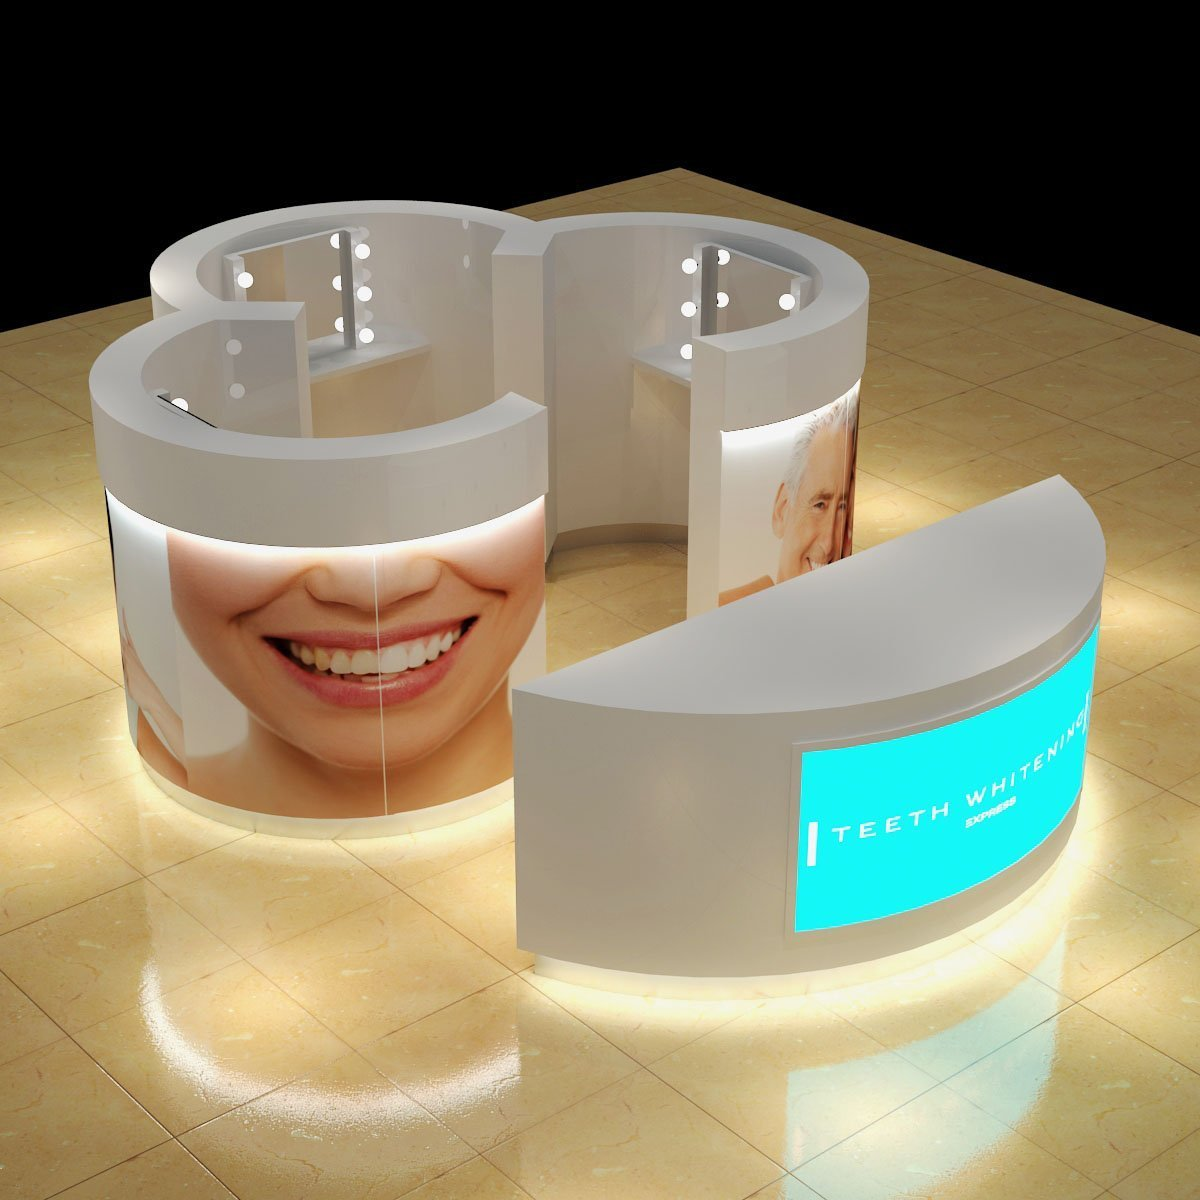 Teeth whitening kiosk to Australia